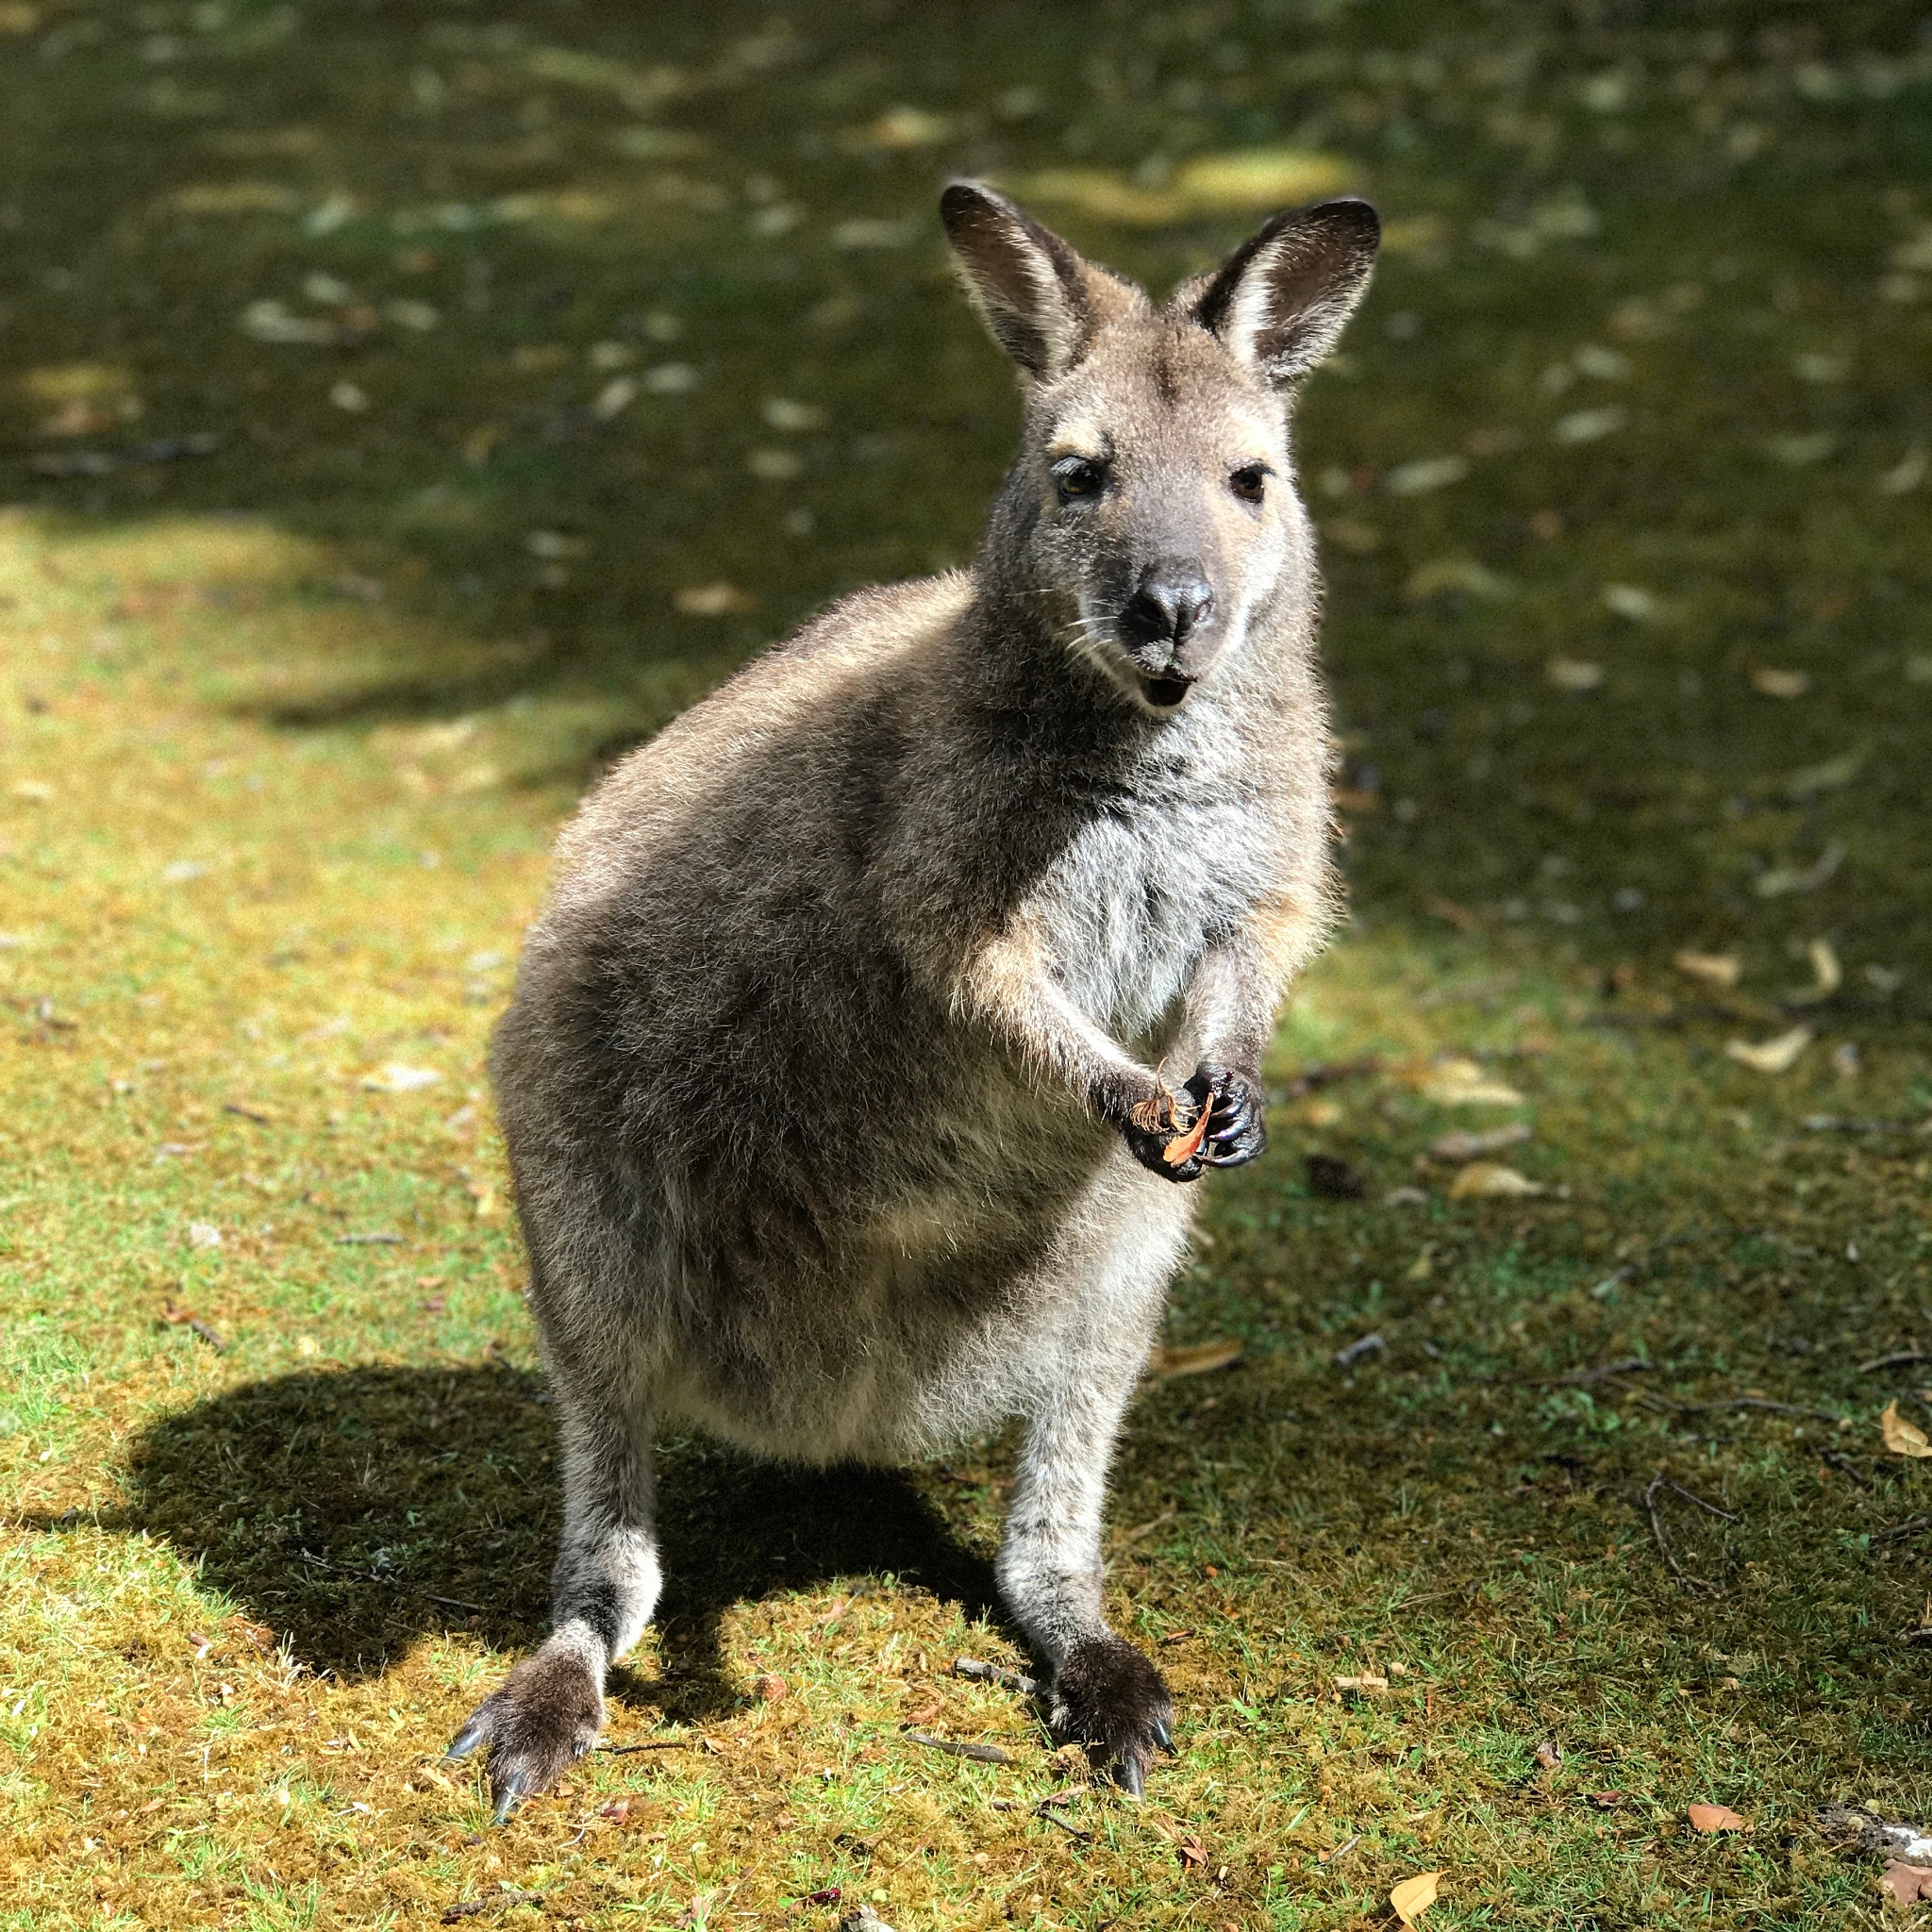 Wallaby by Johnny